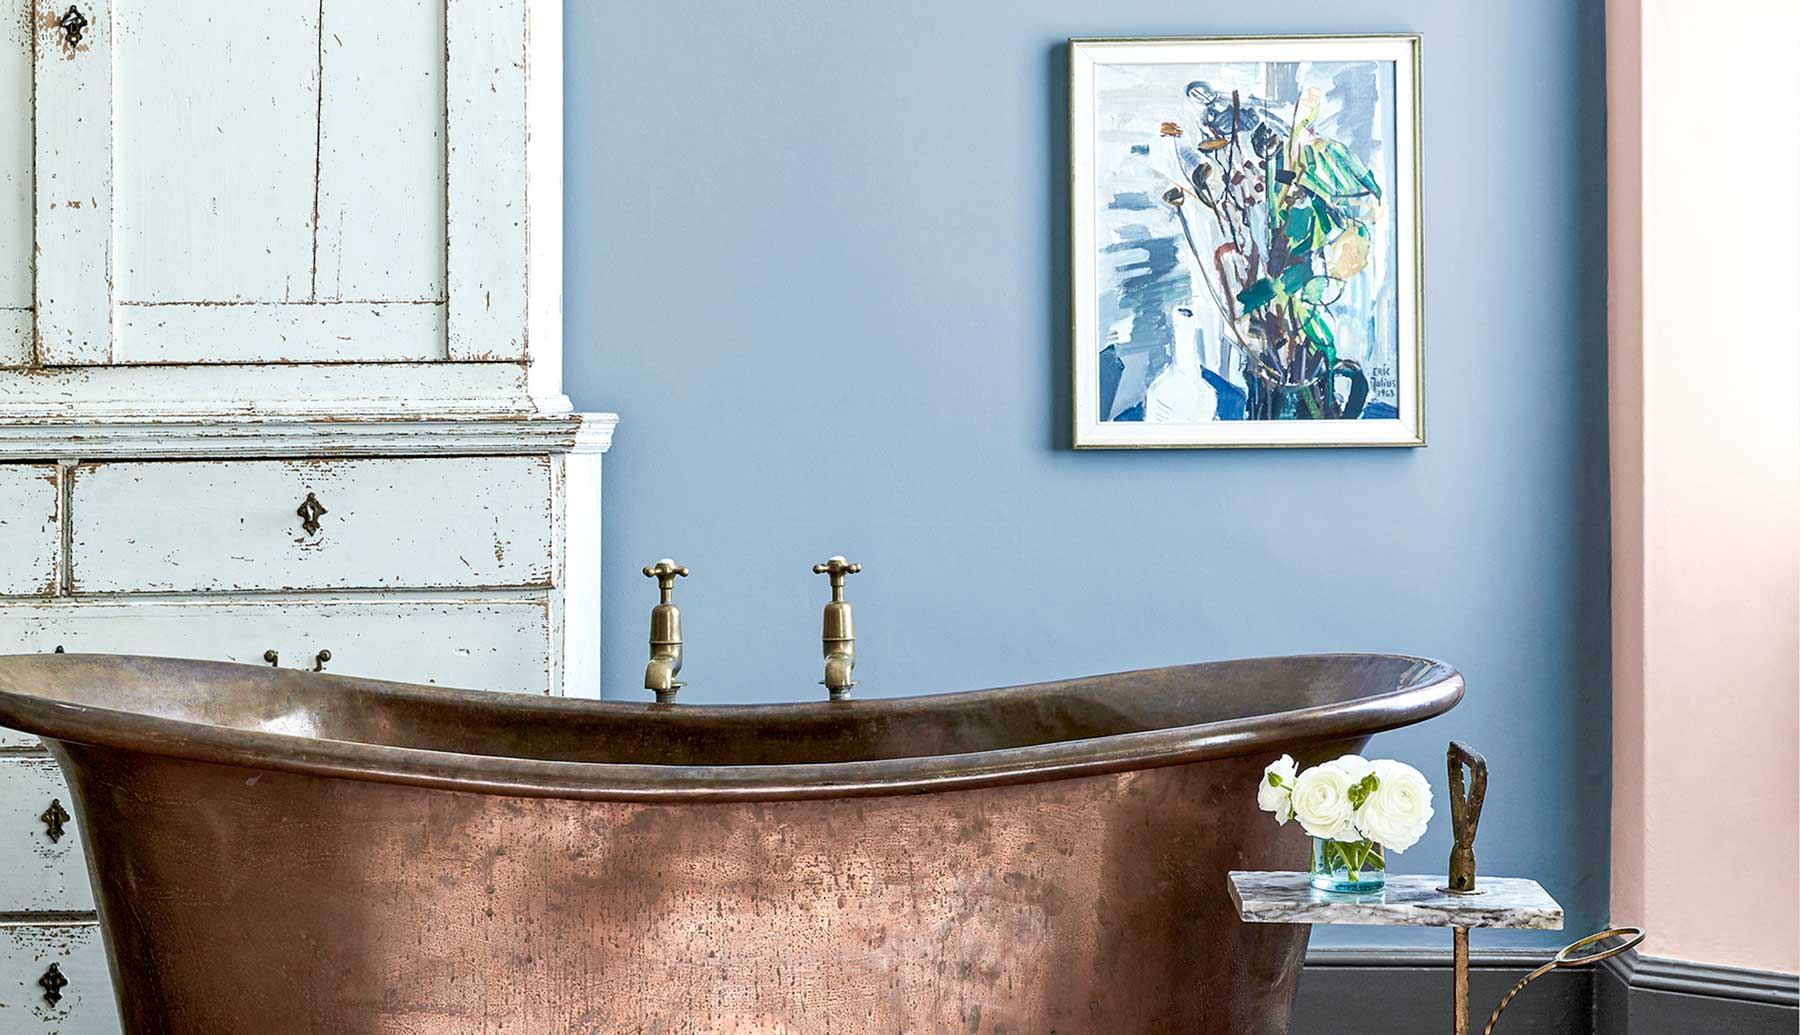 Bespoke copper bathtub with brass taps.